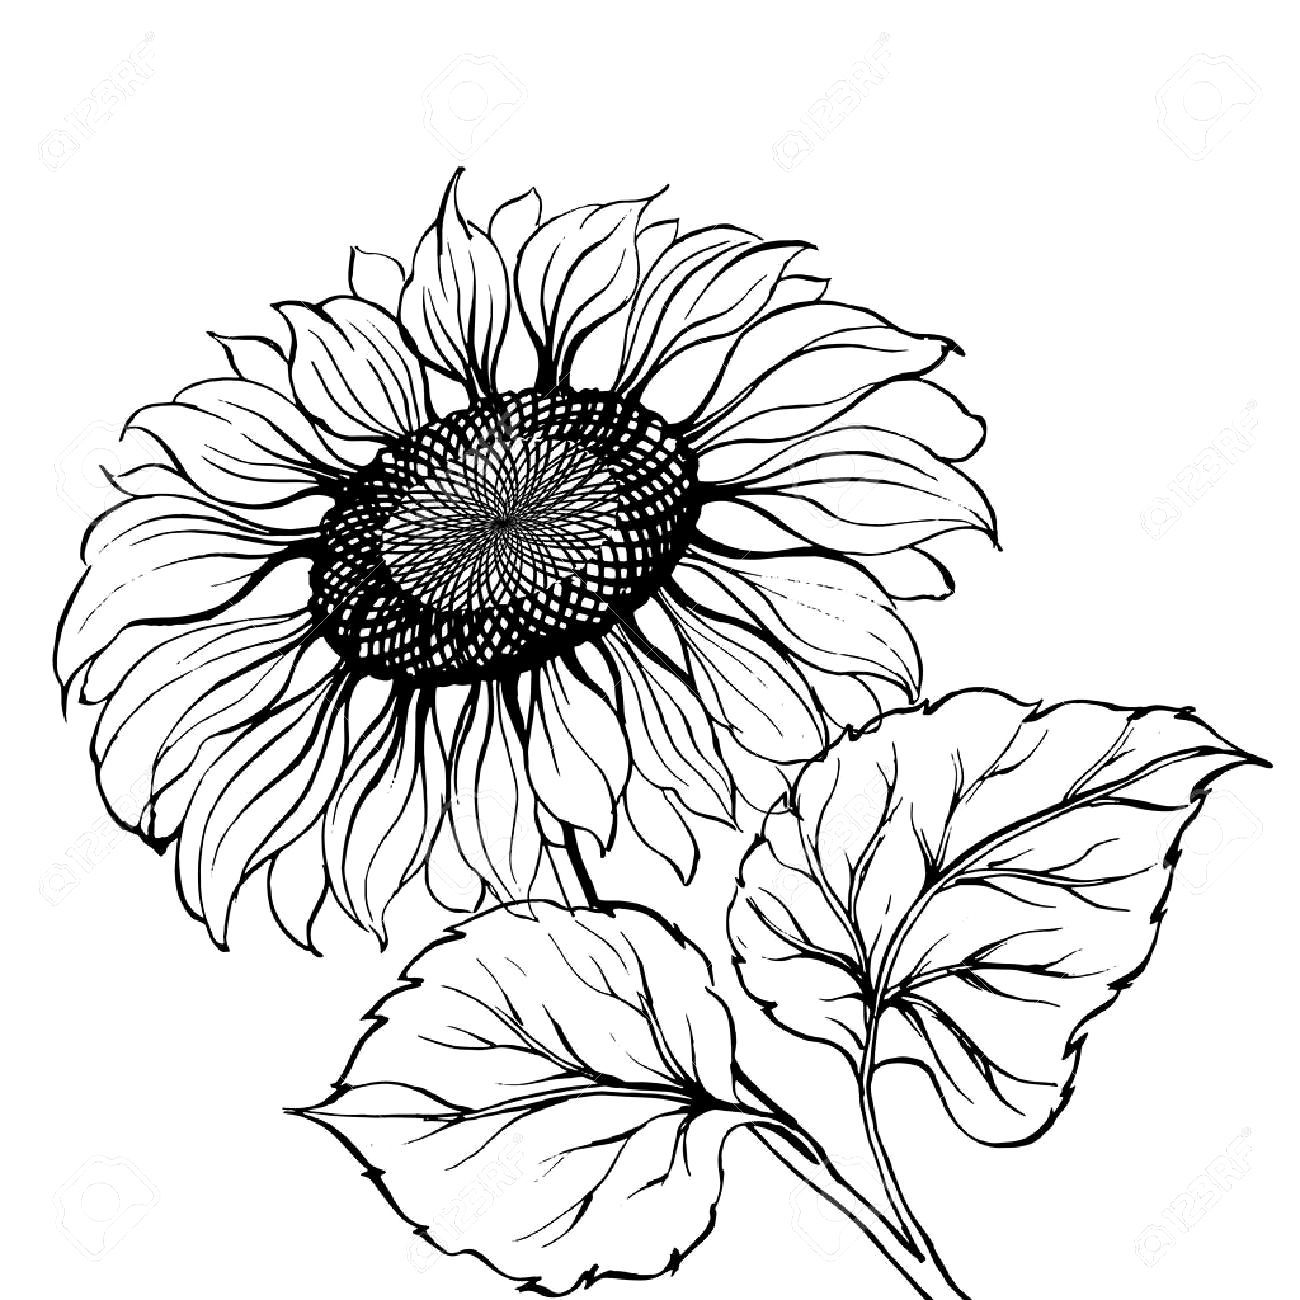 Black And White Sunflower Drawing Trick in 2020 White